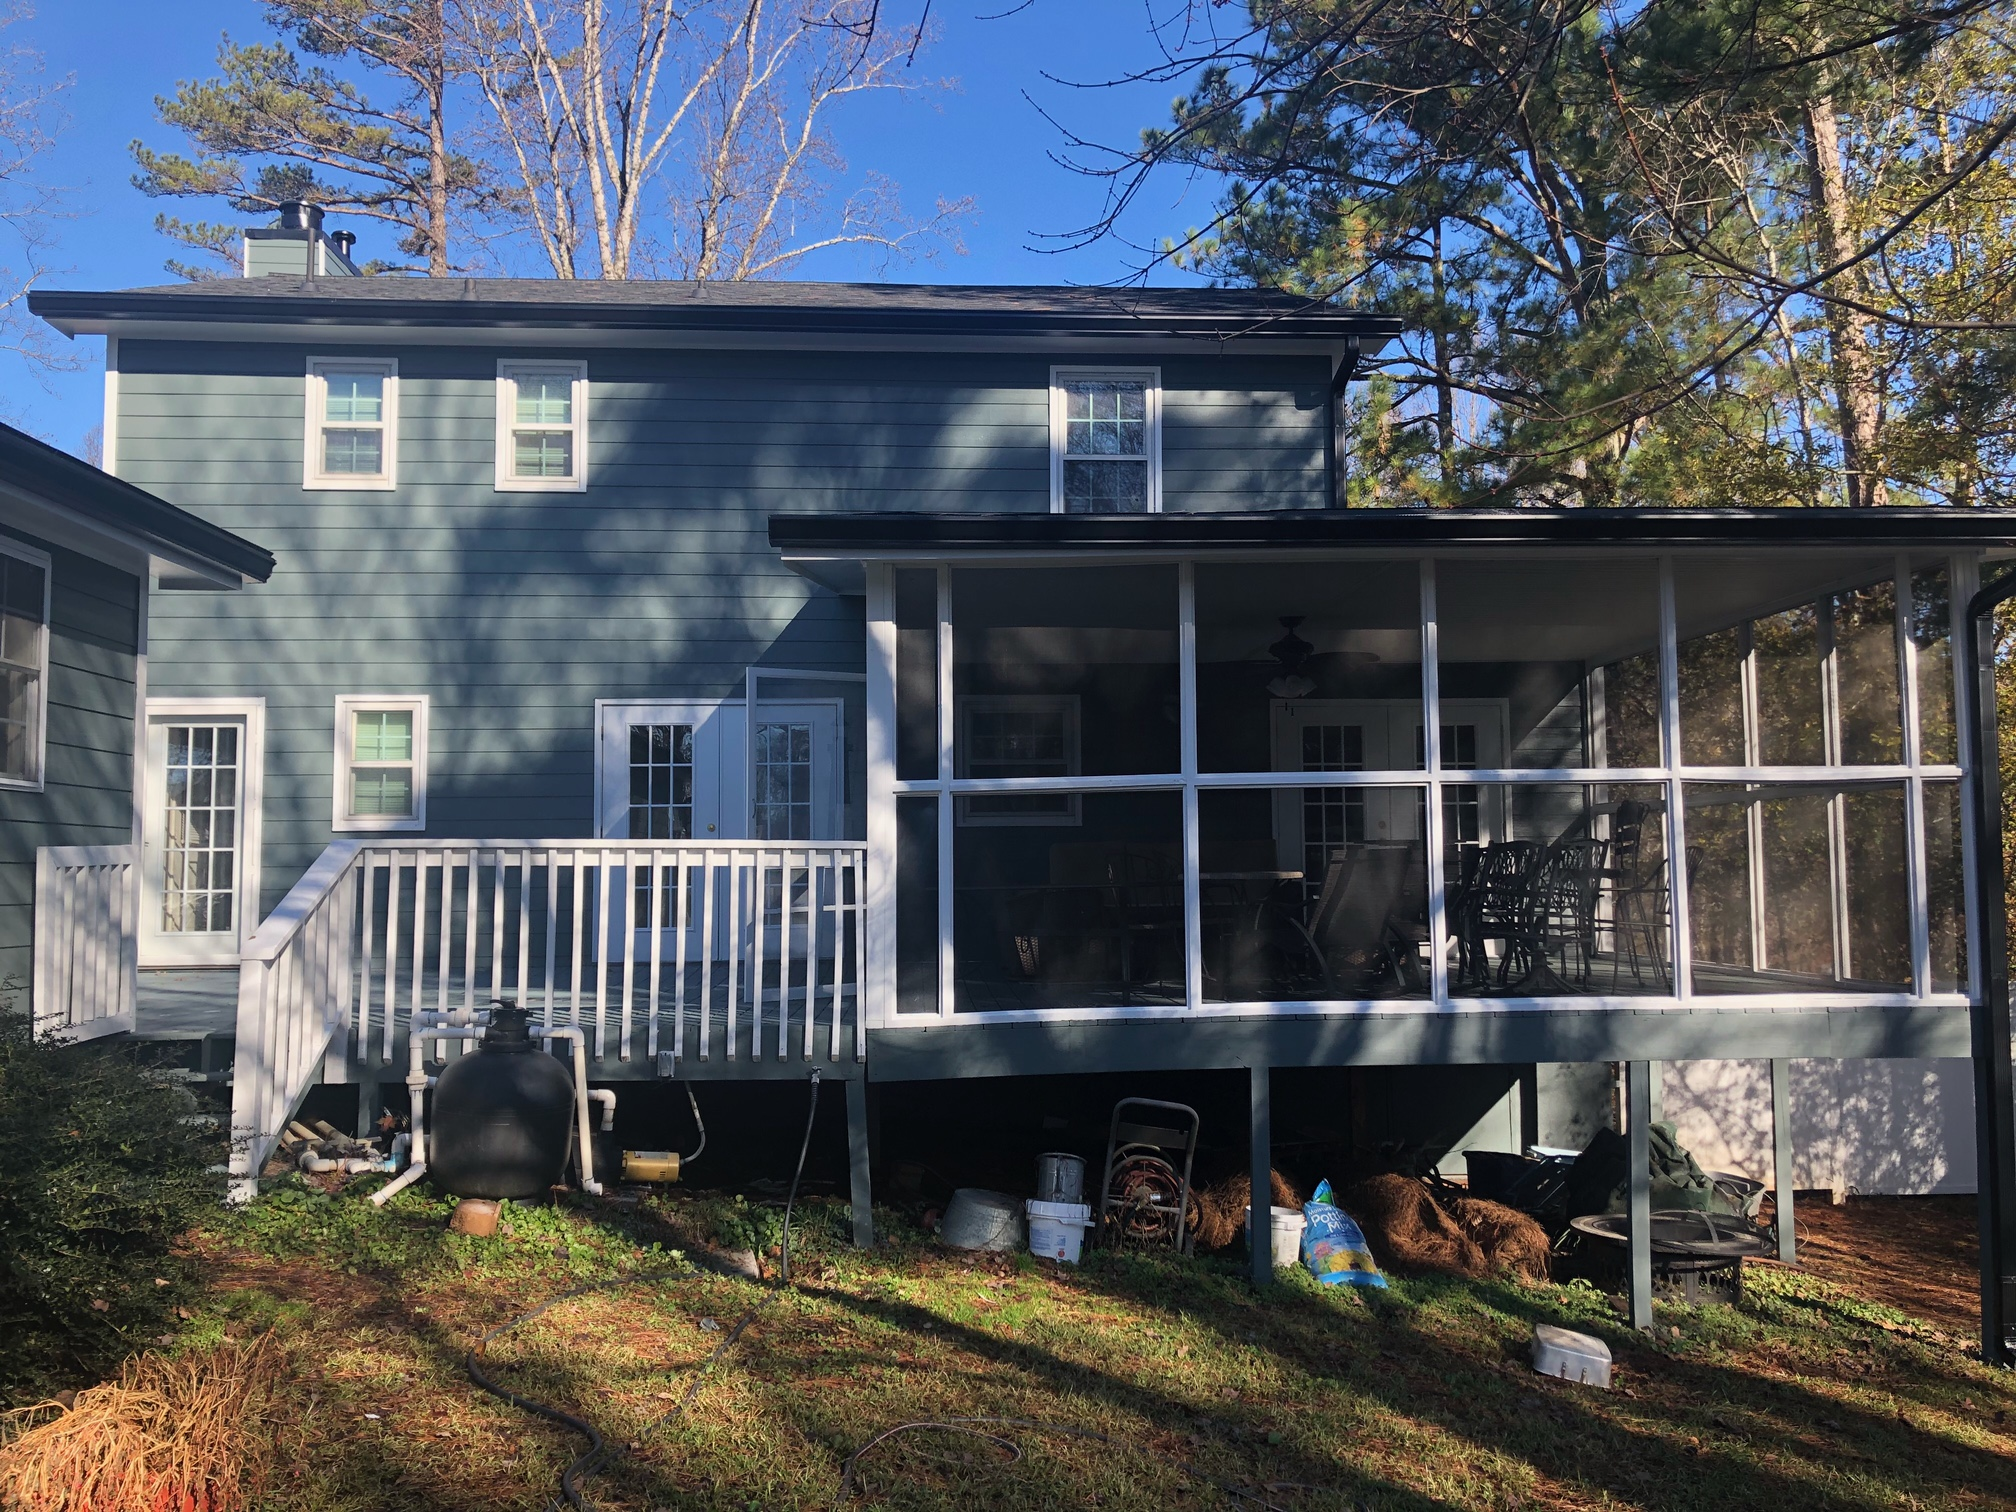 New siding and paint color in Gainesville